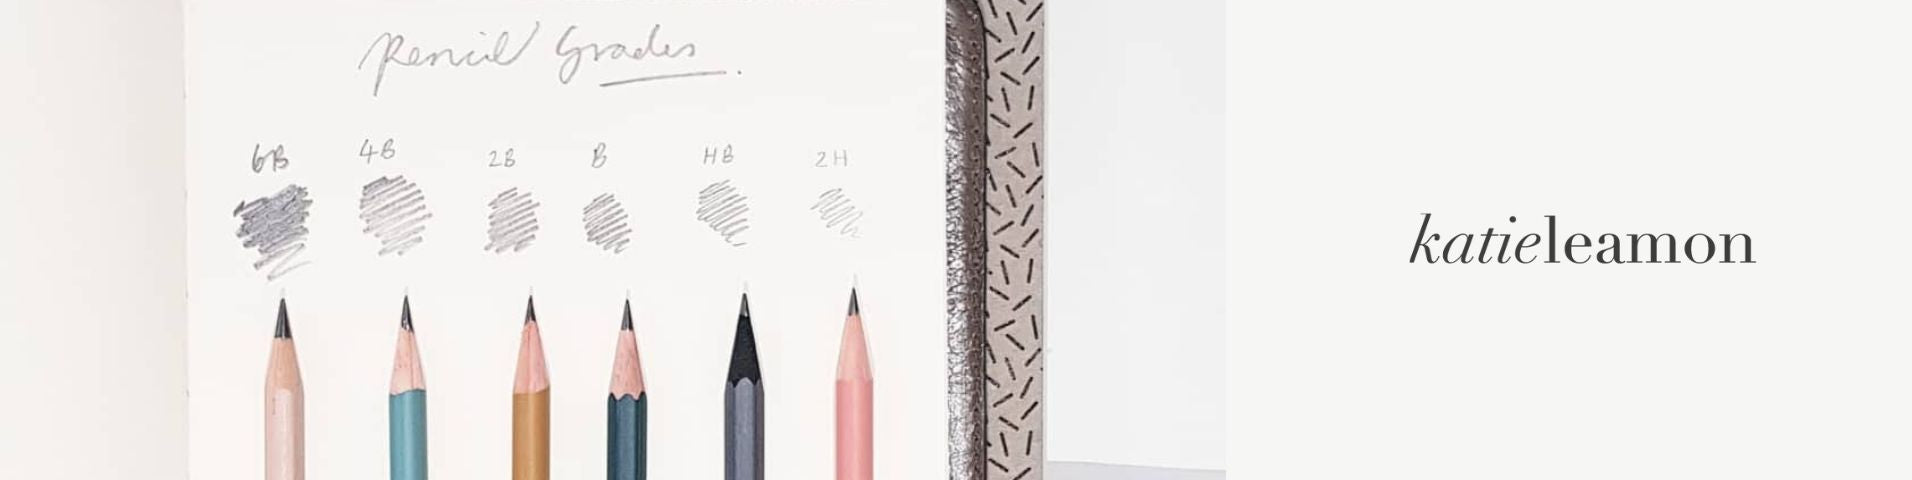 katie leamon stationery made in england